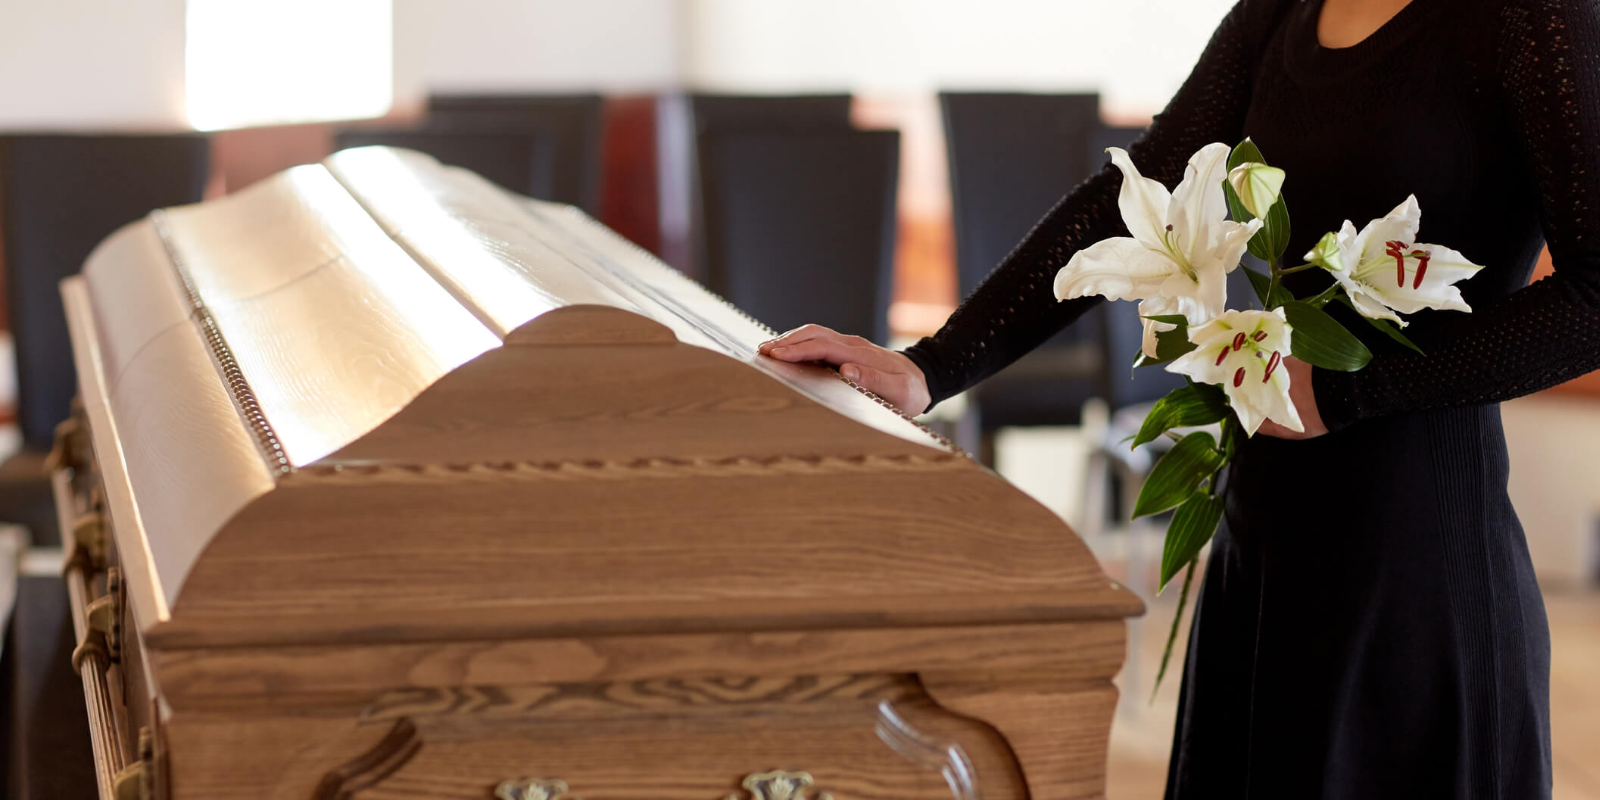 All Aspects of Funeral Care